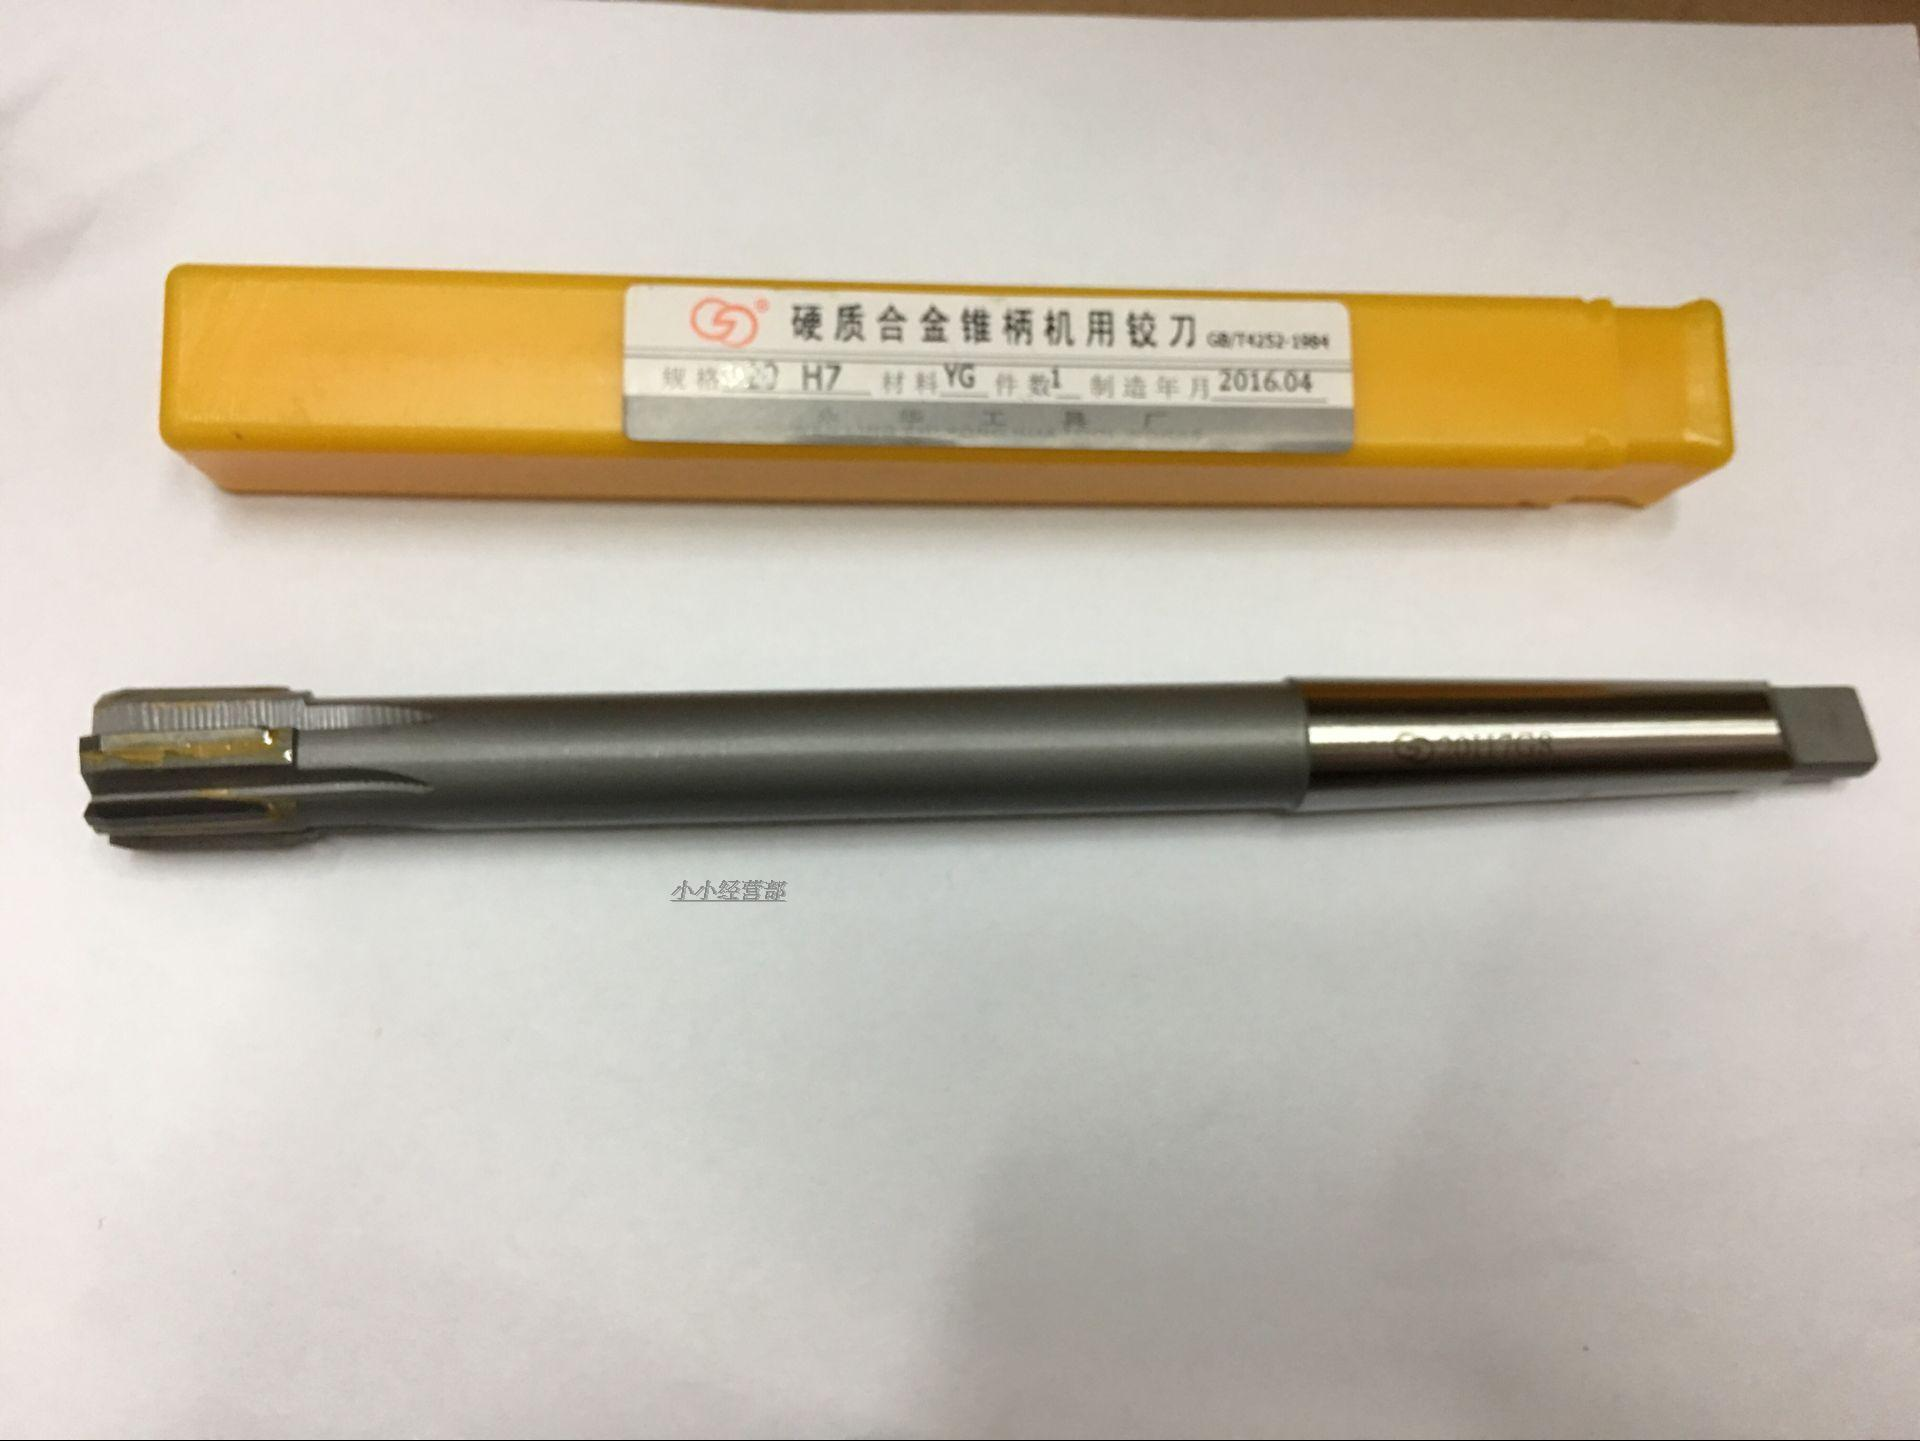 8/9/10/11/12/13/14/15/16/17/18/19 cemented carbide reamer reamer with taper shank machine